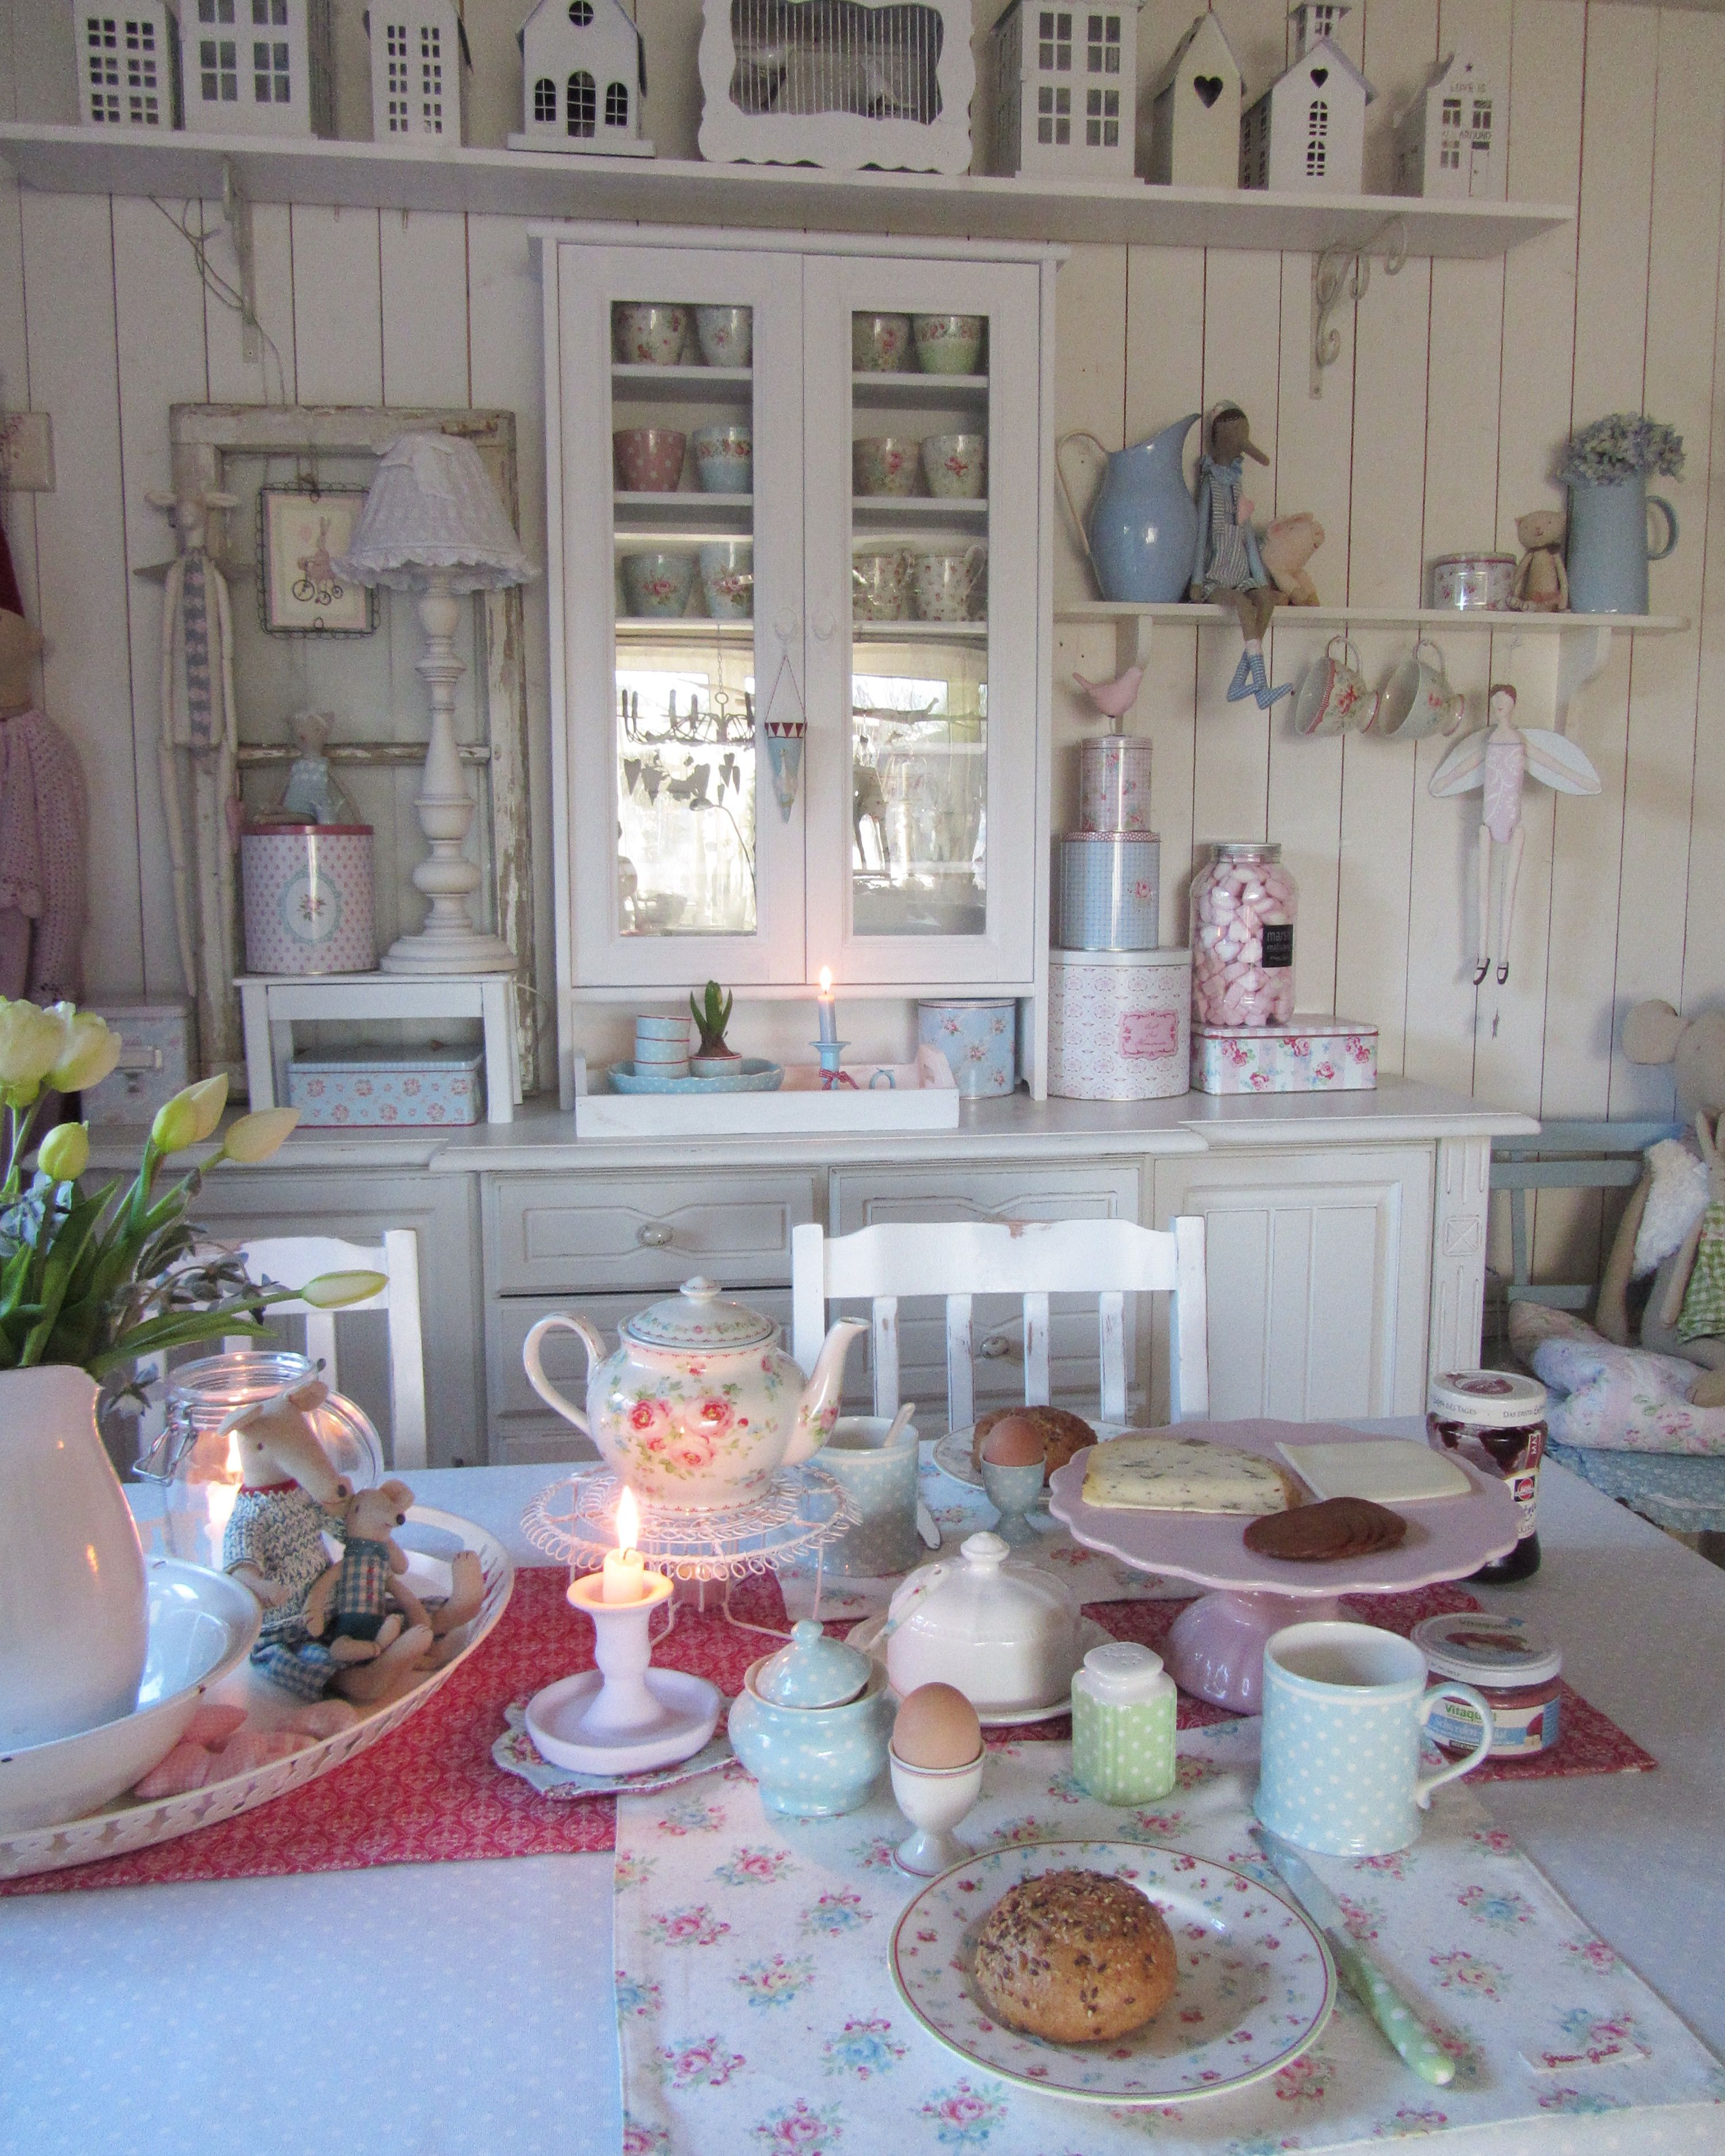 Landhausküchen Shabby Chic I Like The Idea Of Covering Horrid Tiles Or A Shabby Wall With